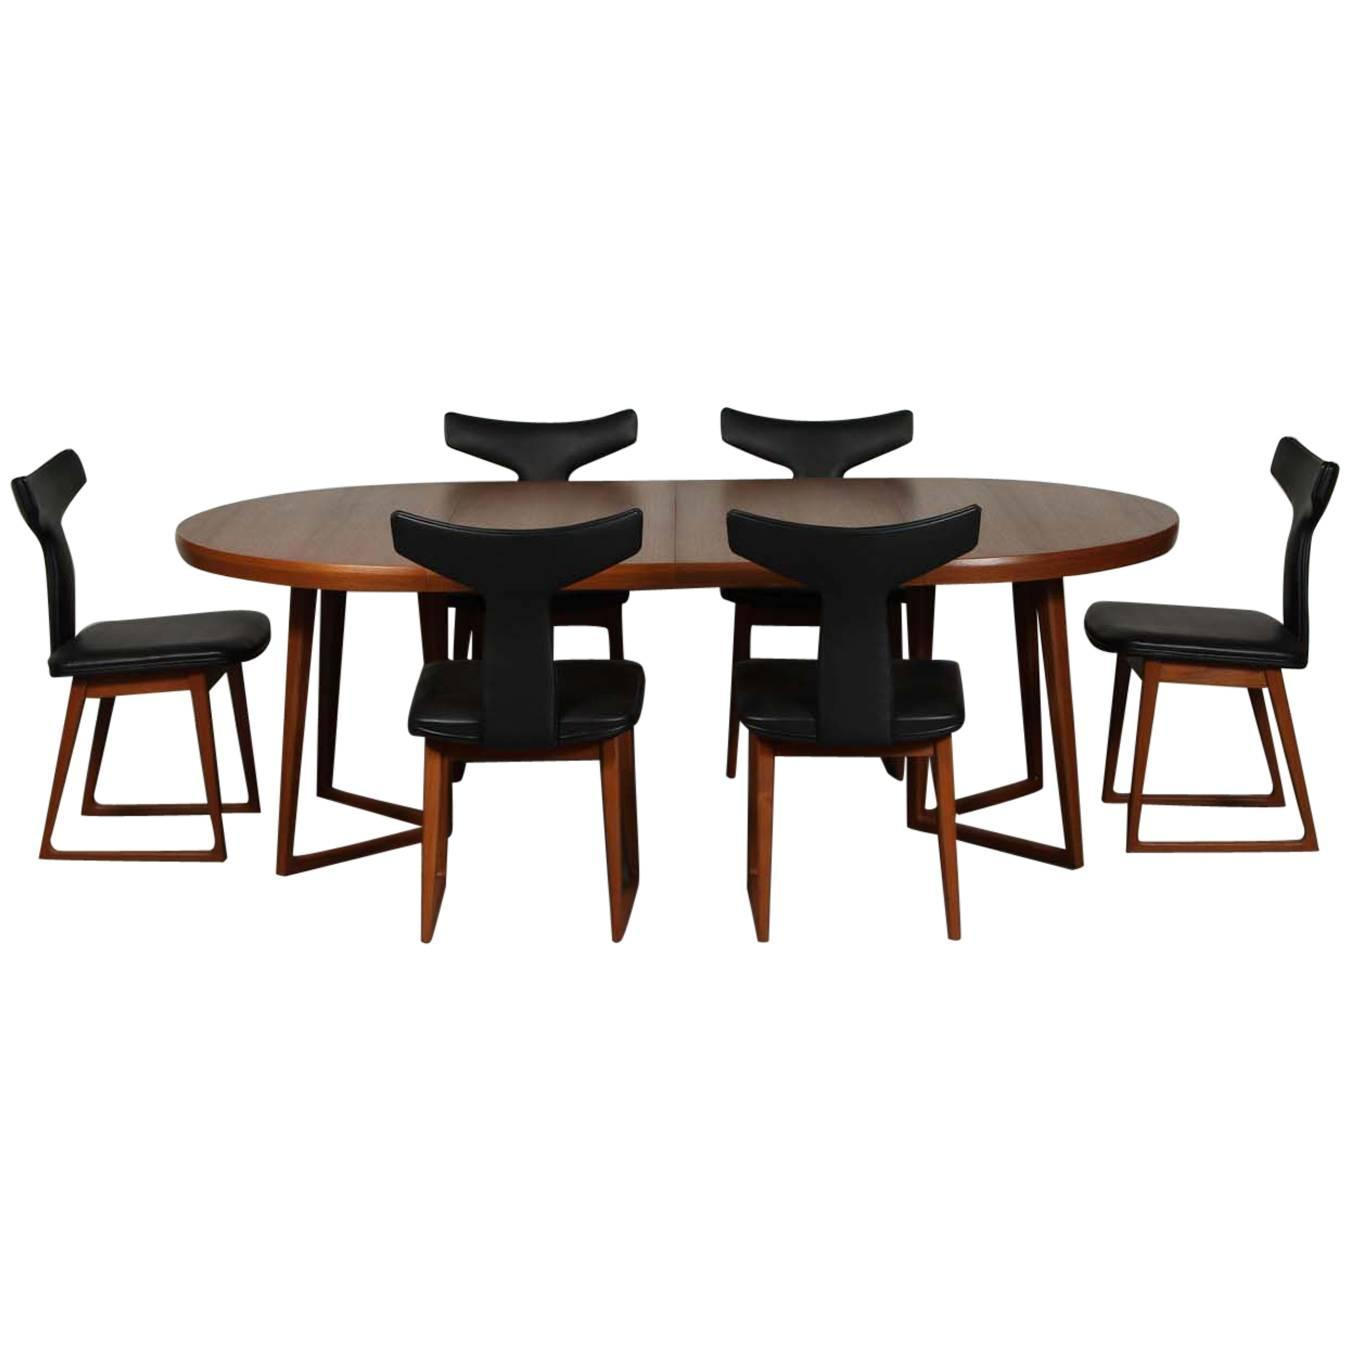 rare mid century danish teak dining set by arne vodder at